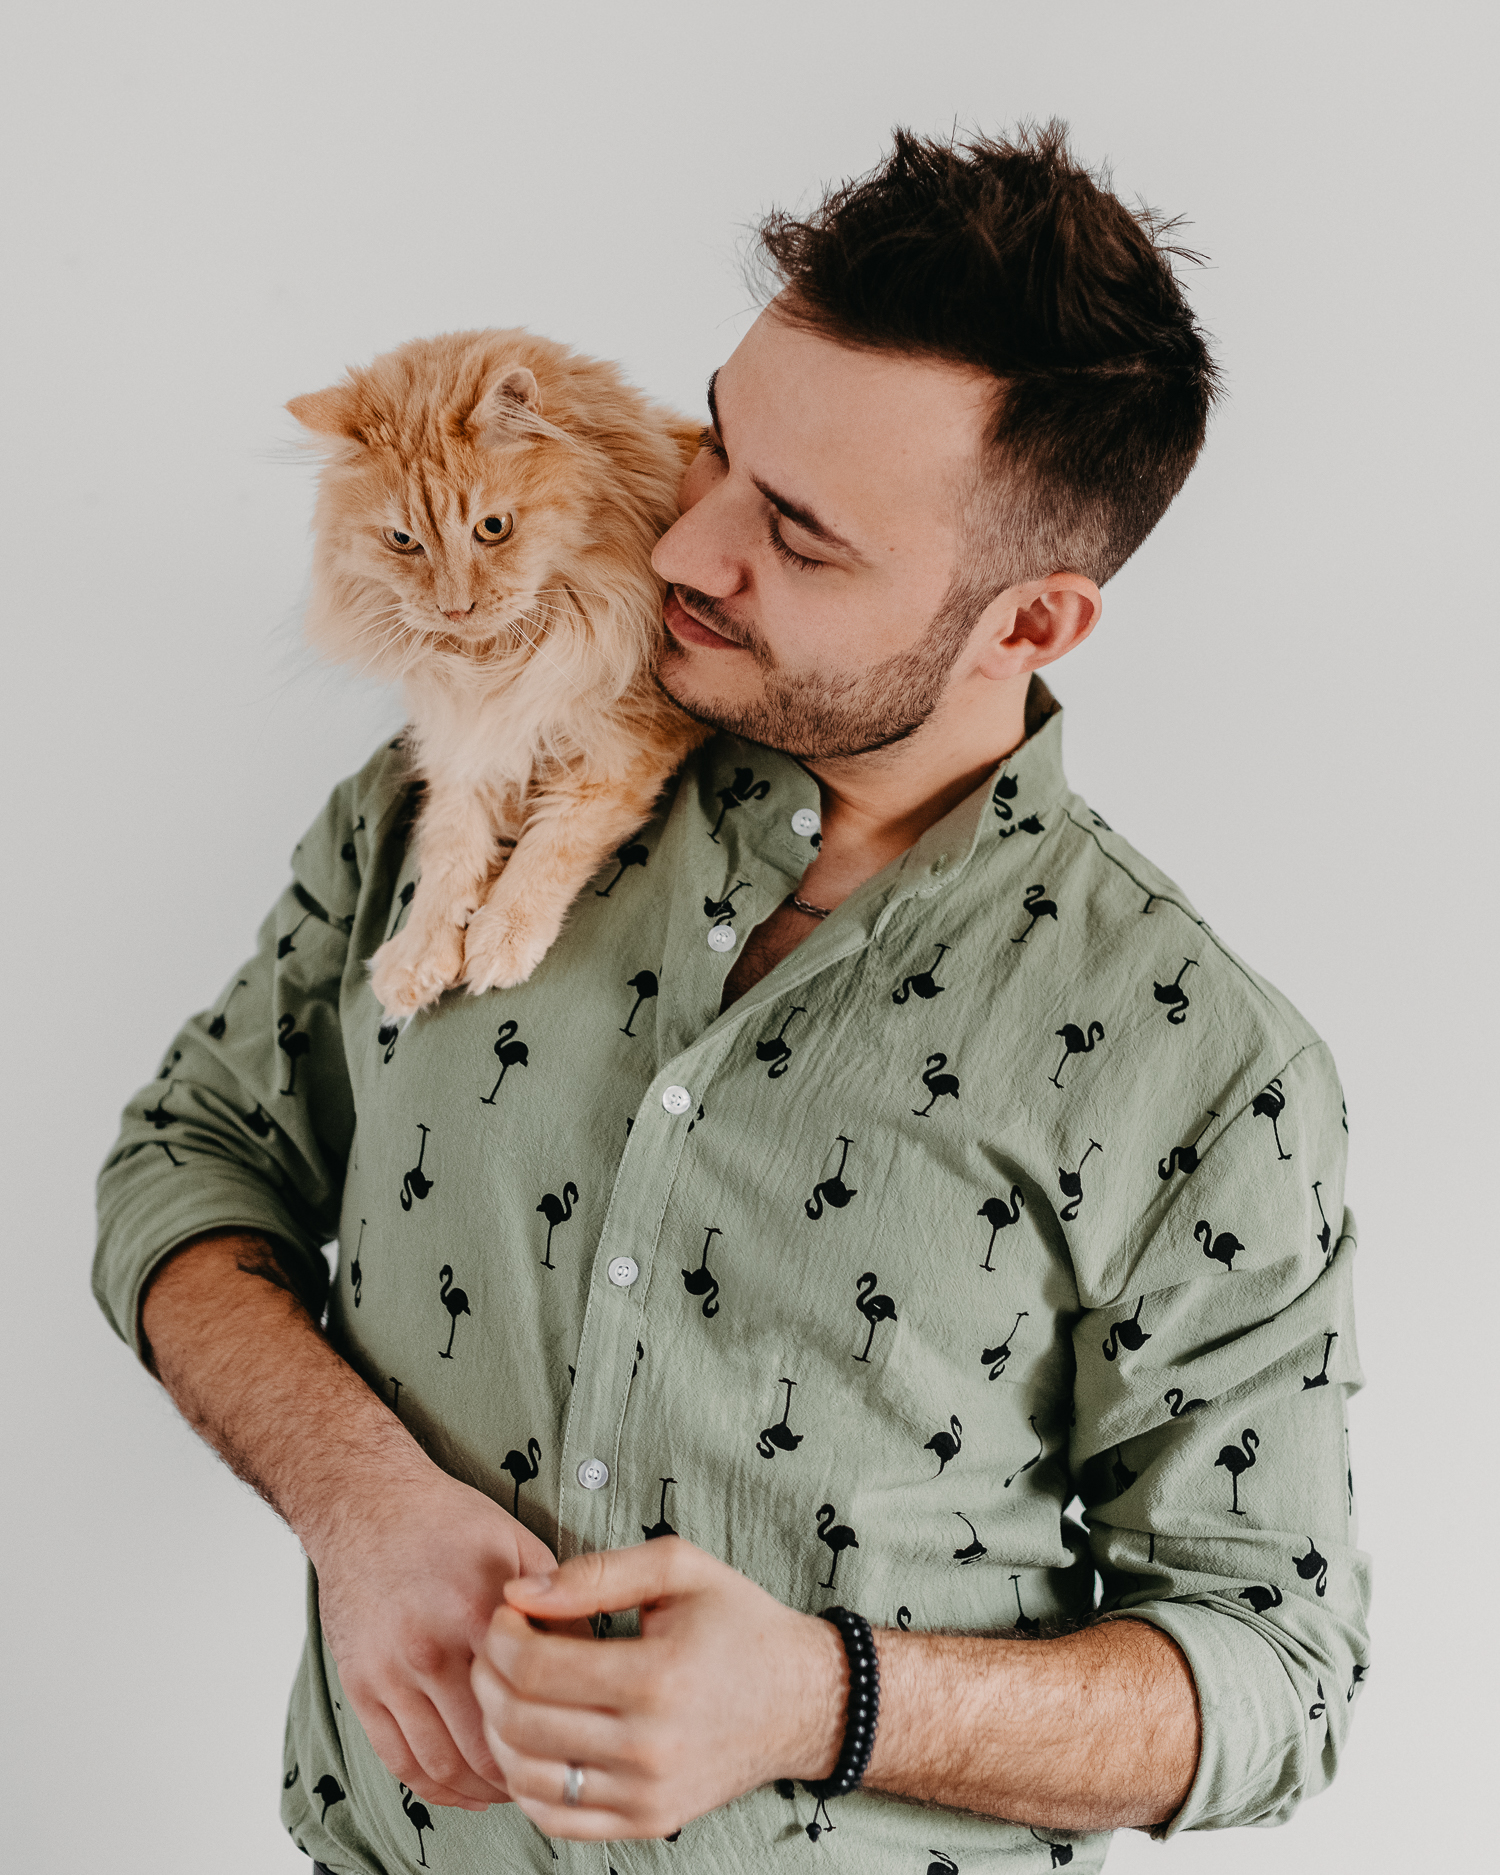 Cute furry cat sitting on man's shoulder